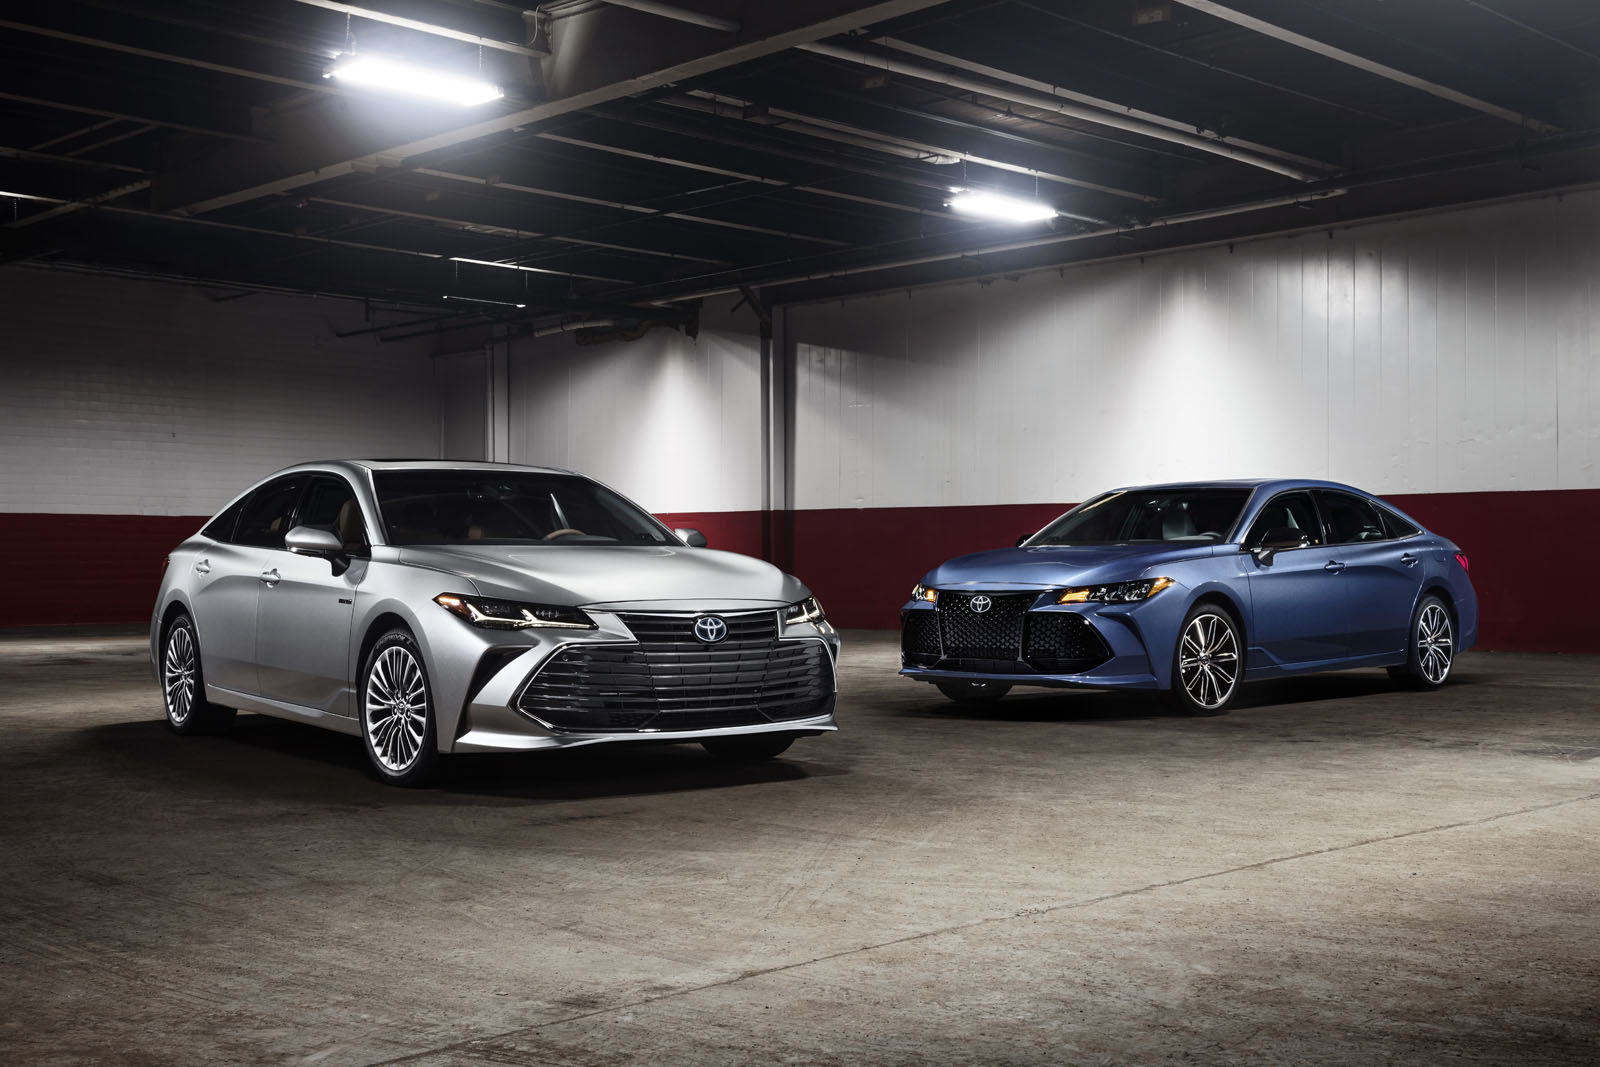 2018 Toyota Camry Inside >> Premium style and luxury - All-new 2019 Toyota Avalon - News/Articles/Motorists Education ...